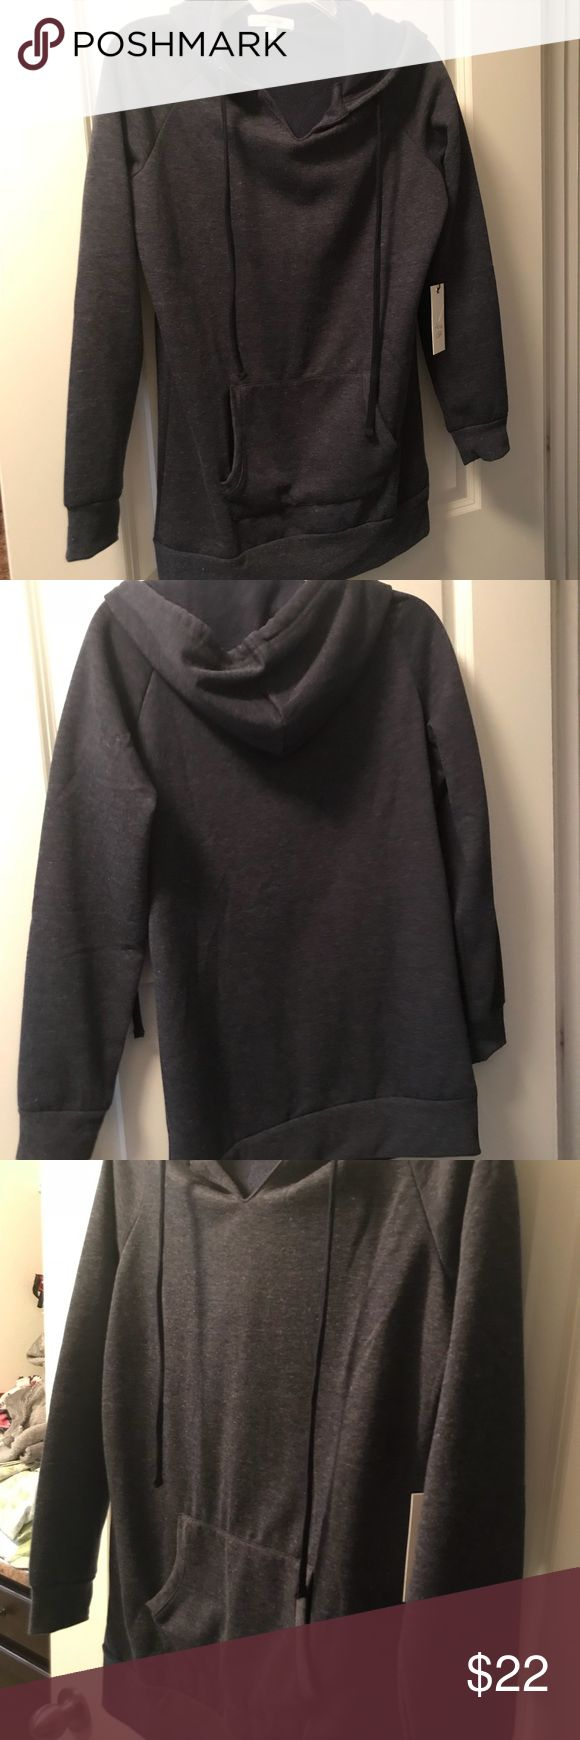 Dark navy hoodie Extra long navy blue hoodie. Match with some comfy yoga pants. active USA Tops Sweatshirts & Hoodies